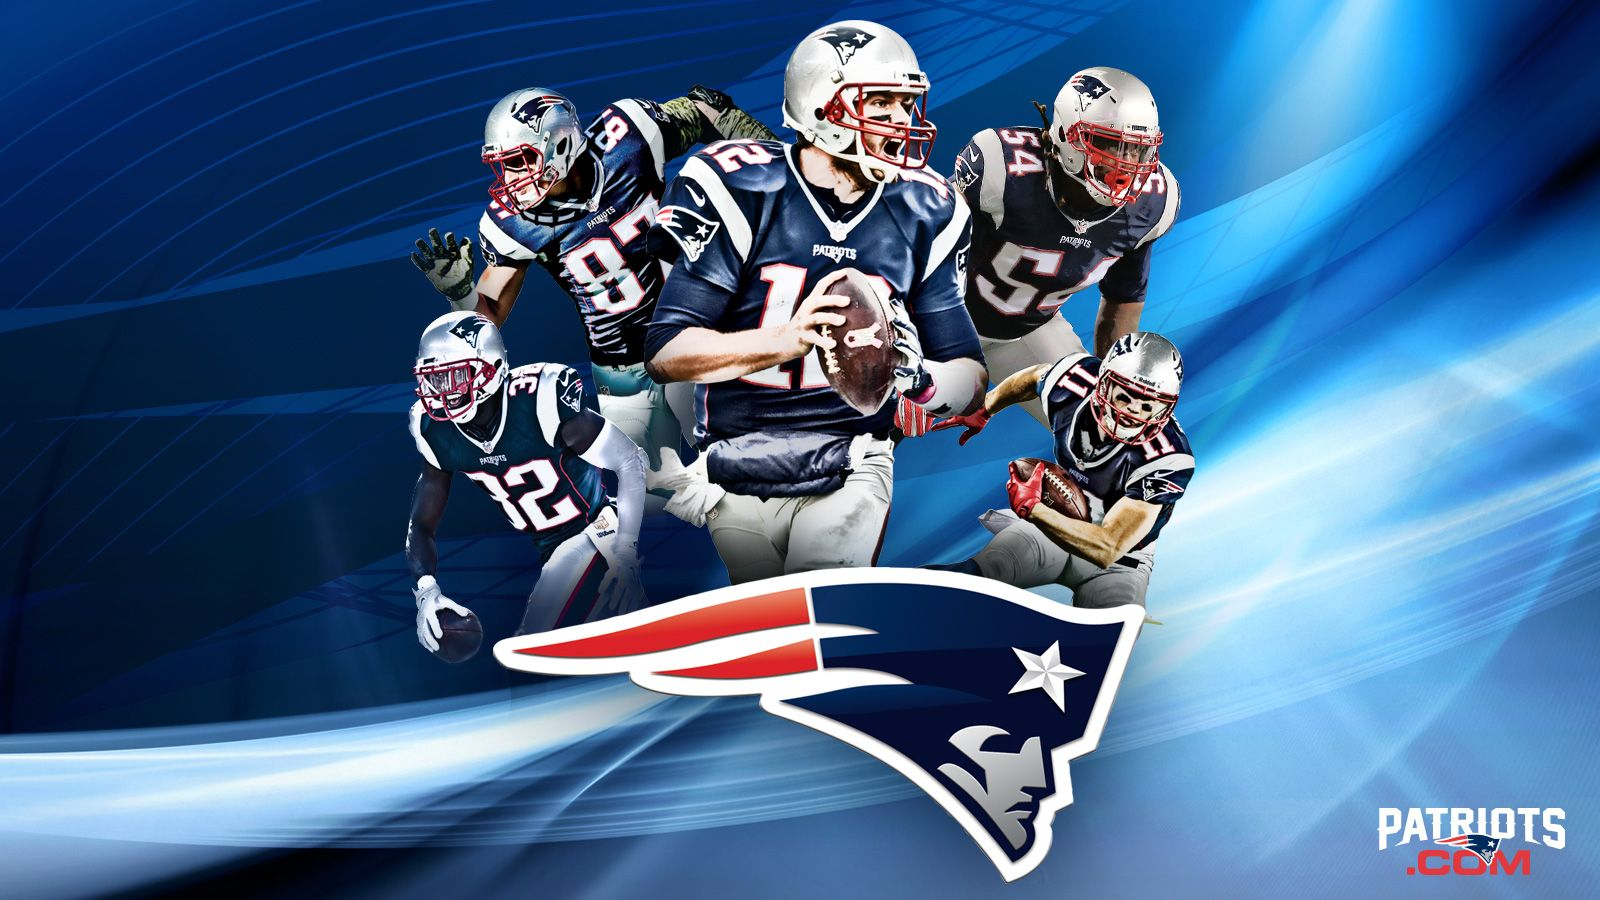 New England Patriots Wallpaper Collection For Free Download New England Patriots Wallpaper New England Patriots Logo England Patriots